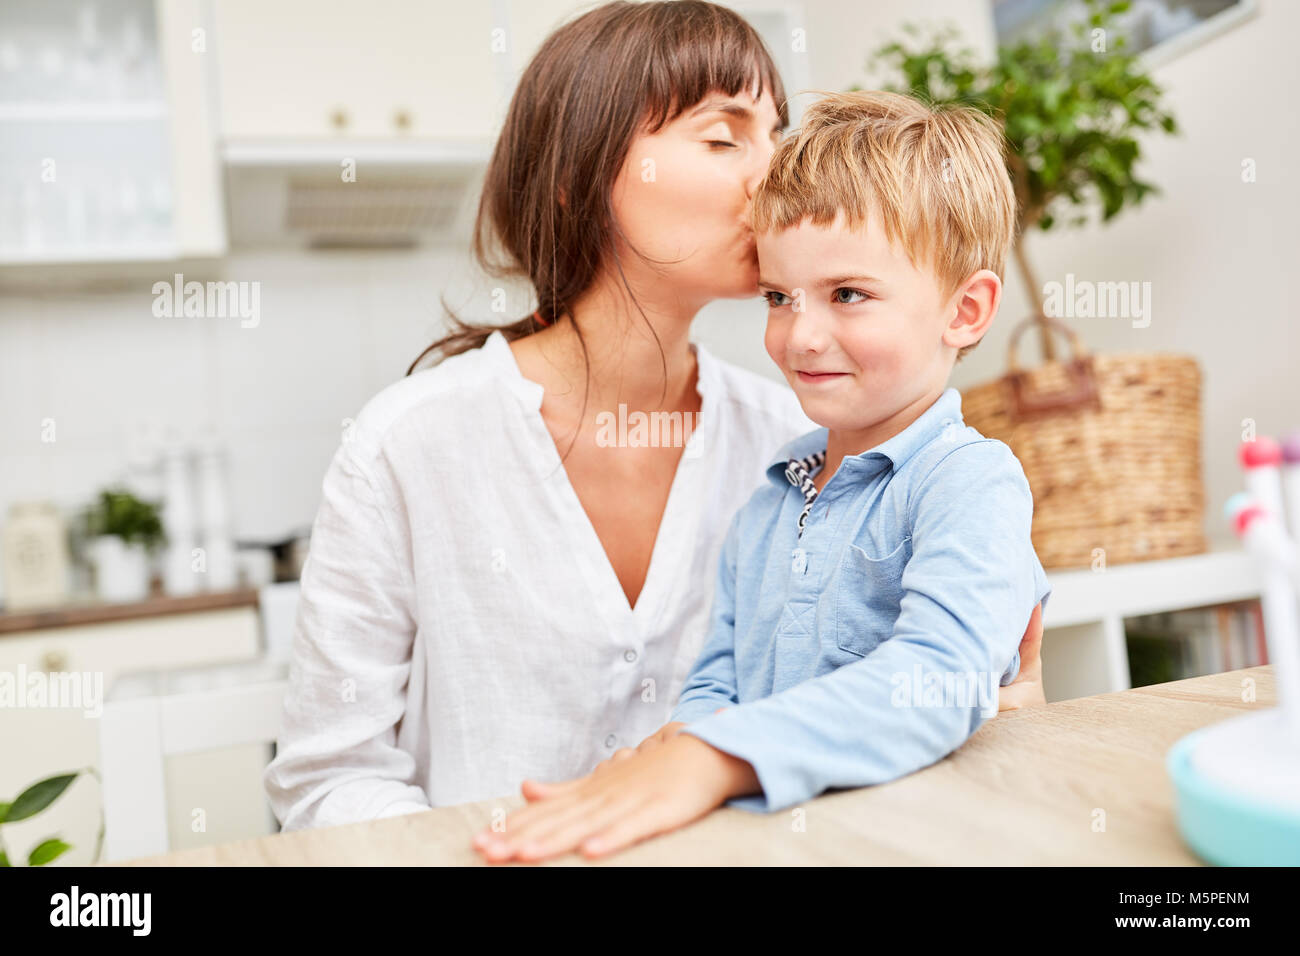 Happy mother lovingly kisses her son on the forehead in the kitchen - Stock Image